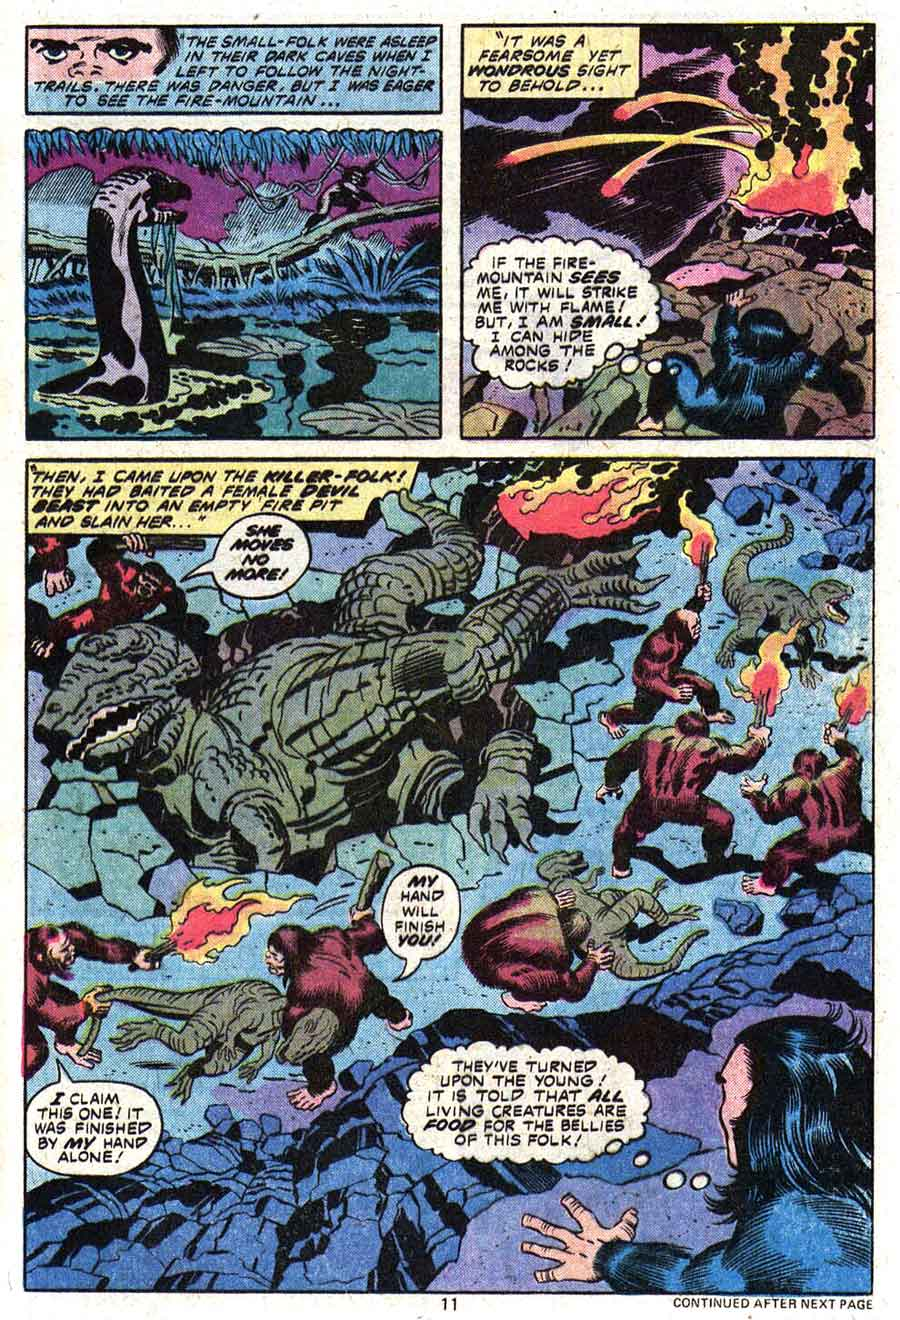 Devil Dinosaur v1 #1 marvel 1970s bronze age comic book page art by Jack Kirby